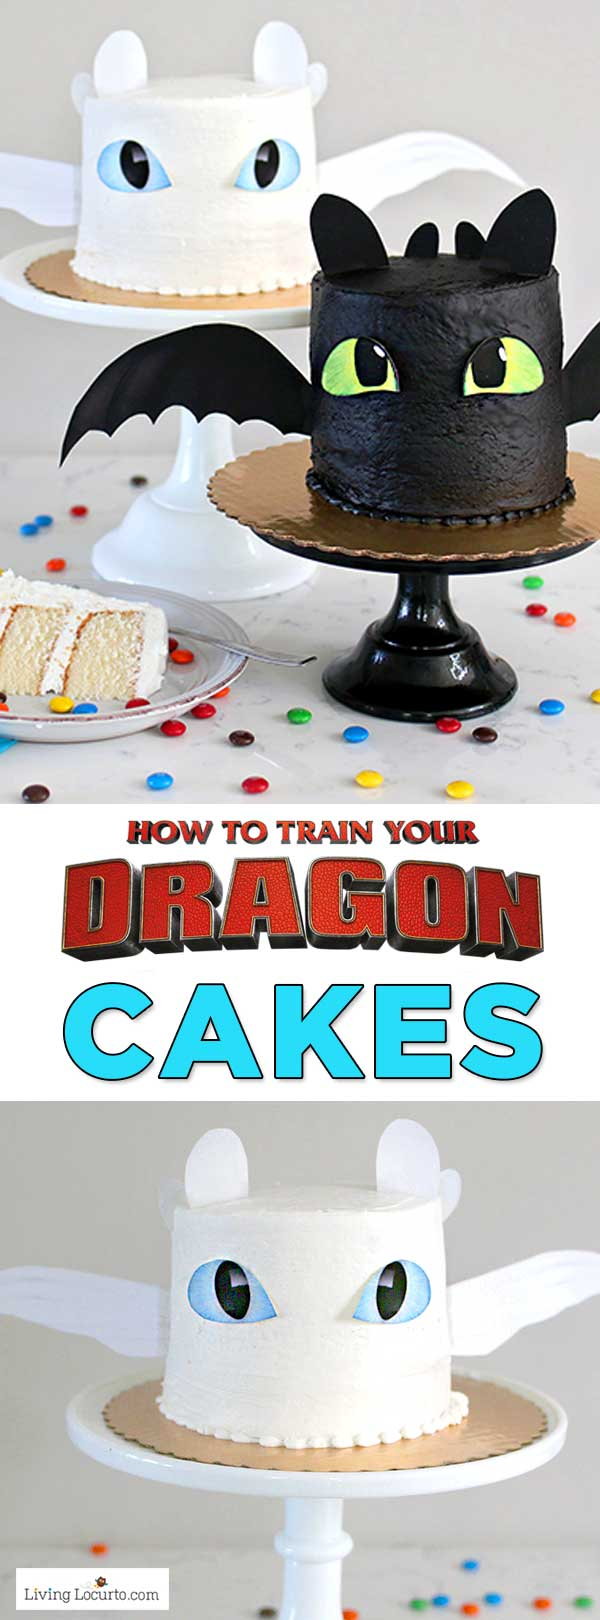 Easy How To Train Your Dragon Cake Tutorial! Fluffy white cake recipe for a Night Fury or Light Fury dragon cake. A perfect birthday party cake! LivingLocurto.com #cake #dragon #recipe